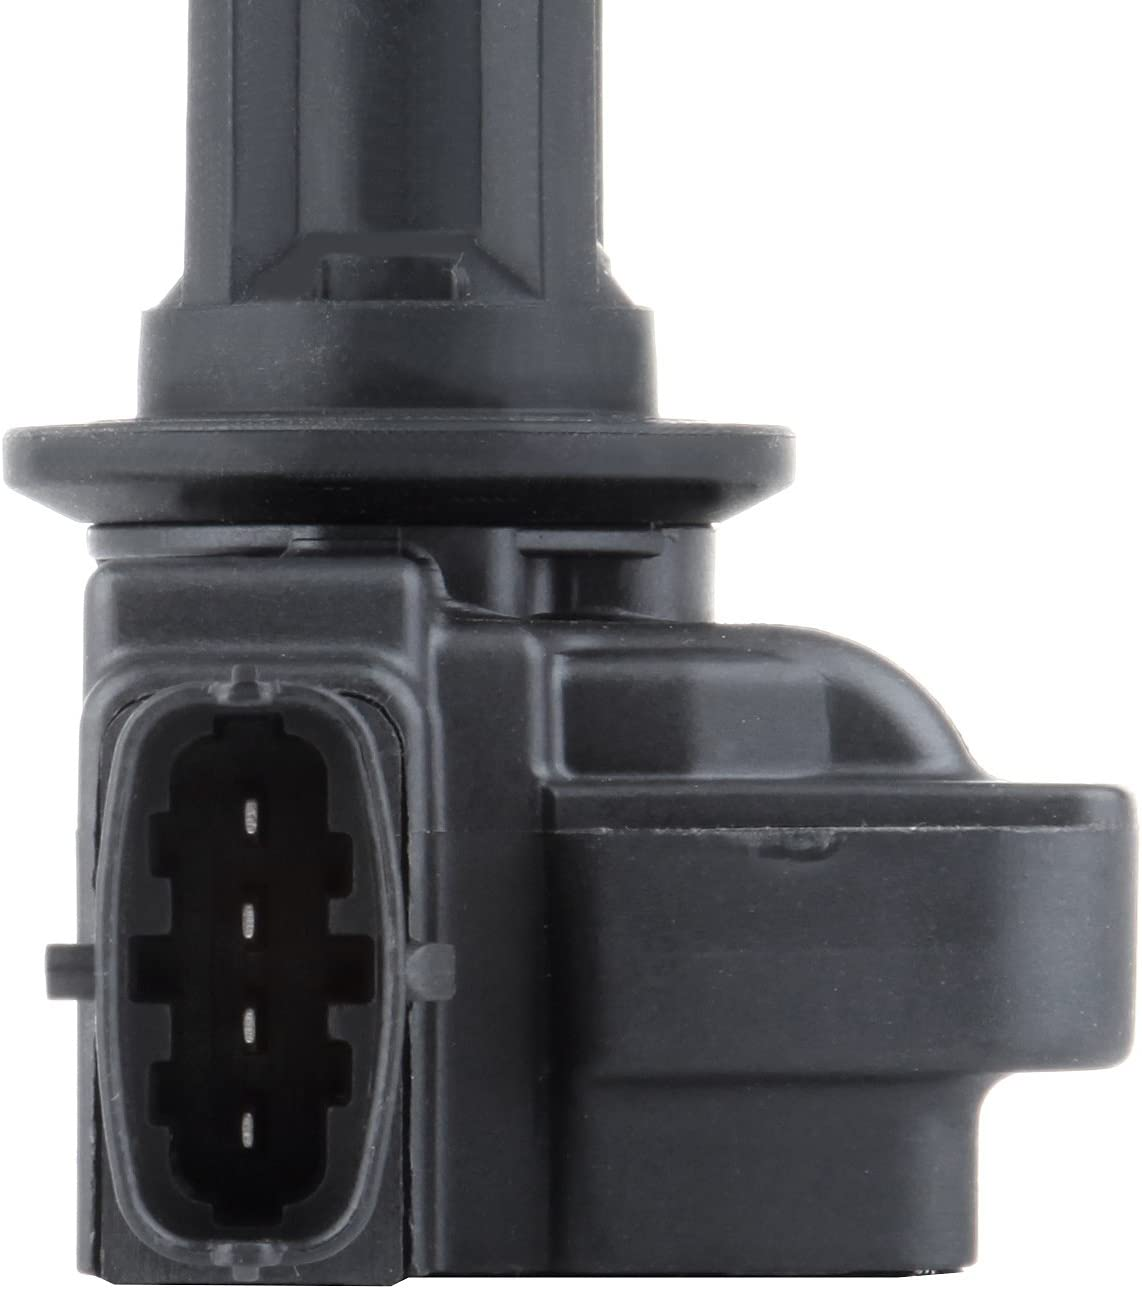 SCITOO Pack of 1 Ignition Coil fits for Saab 9-3 Saab 9-3X Cadillac BLS 2003-2011 UF526 5C1761